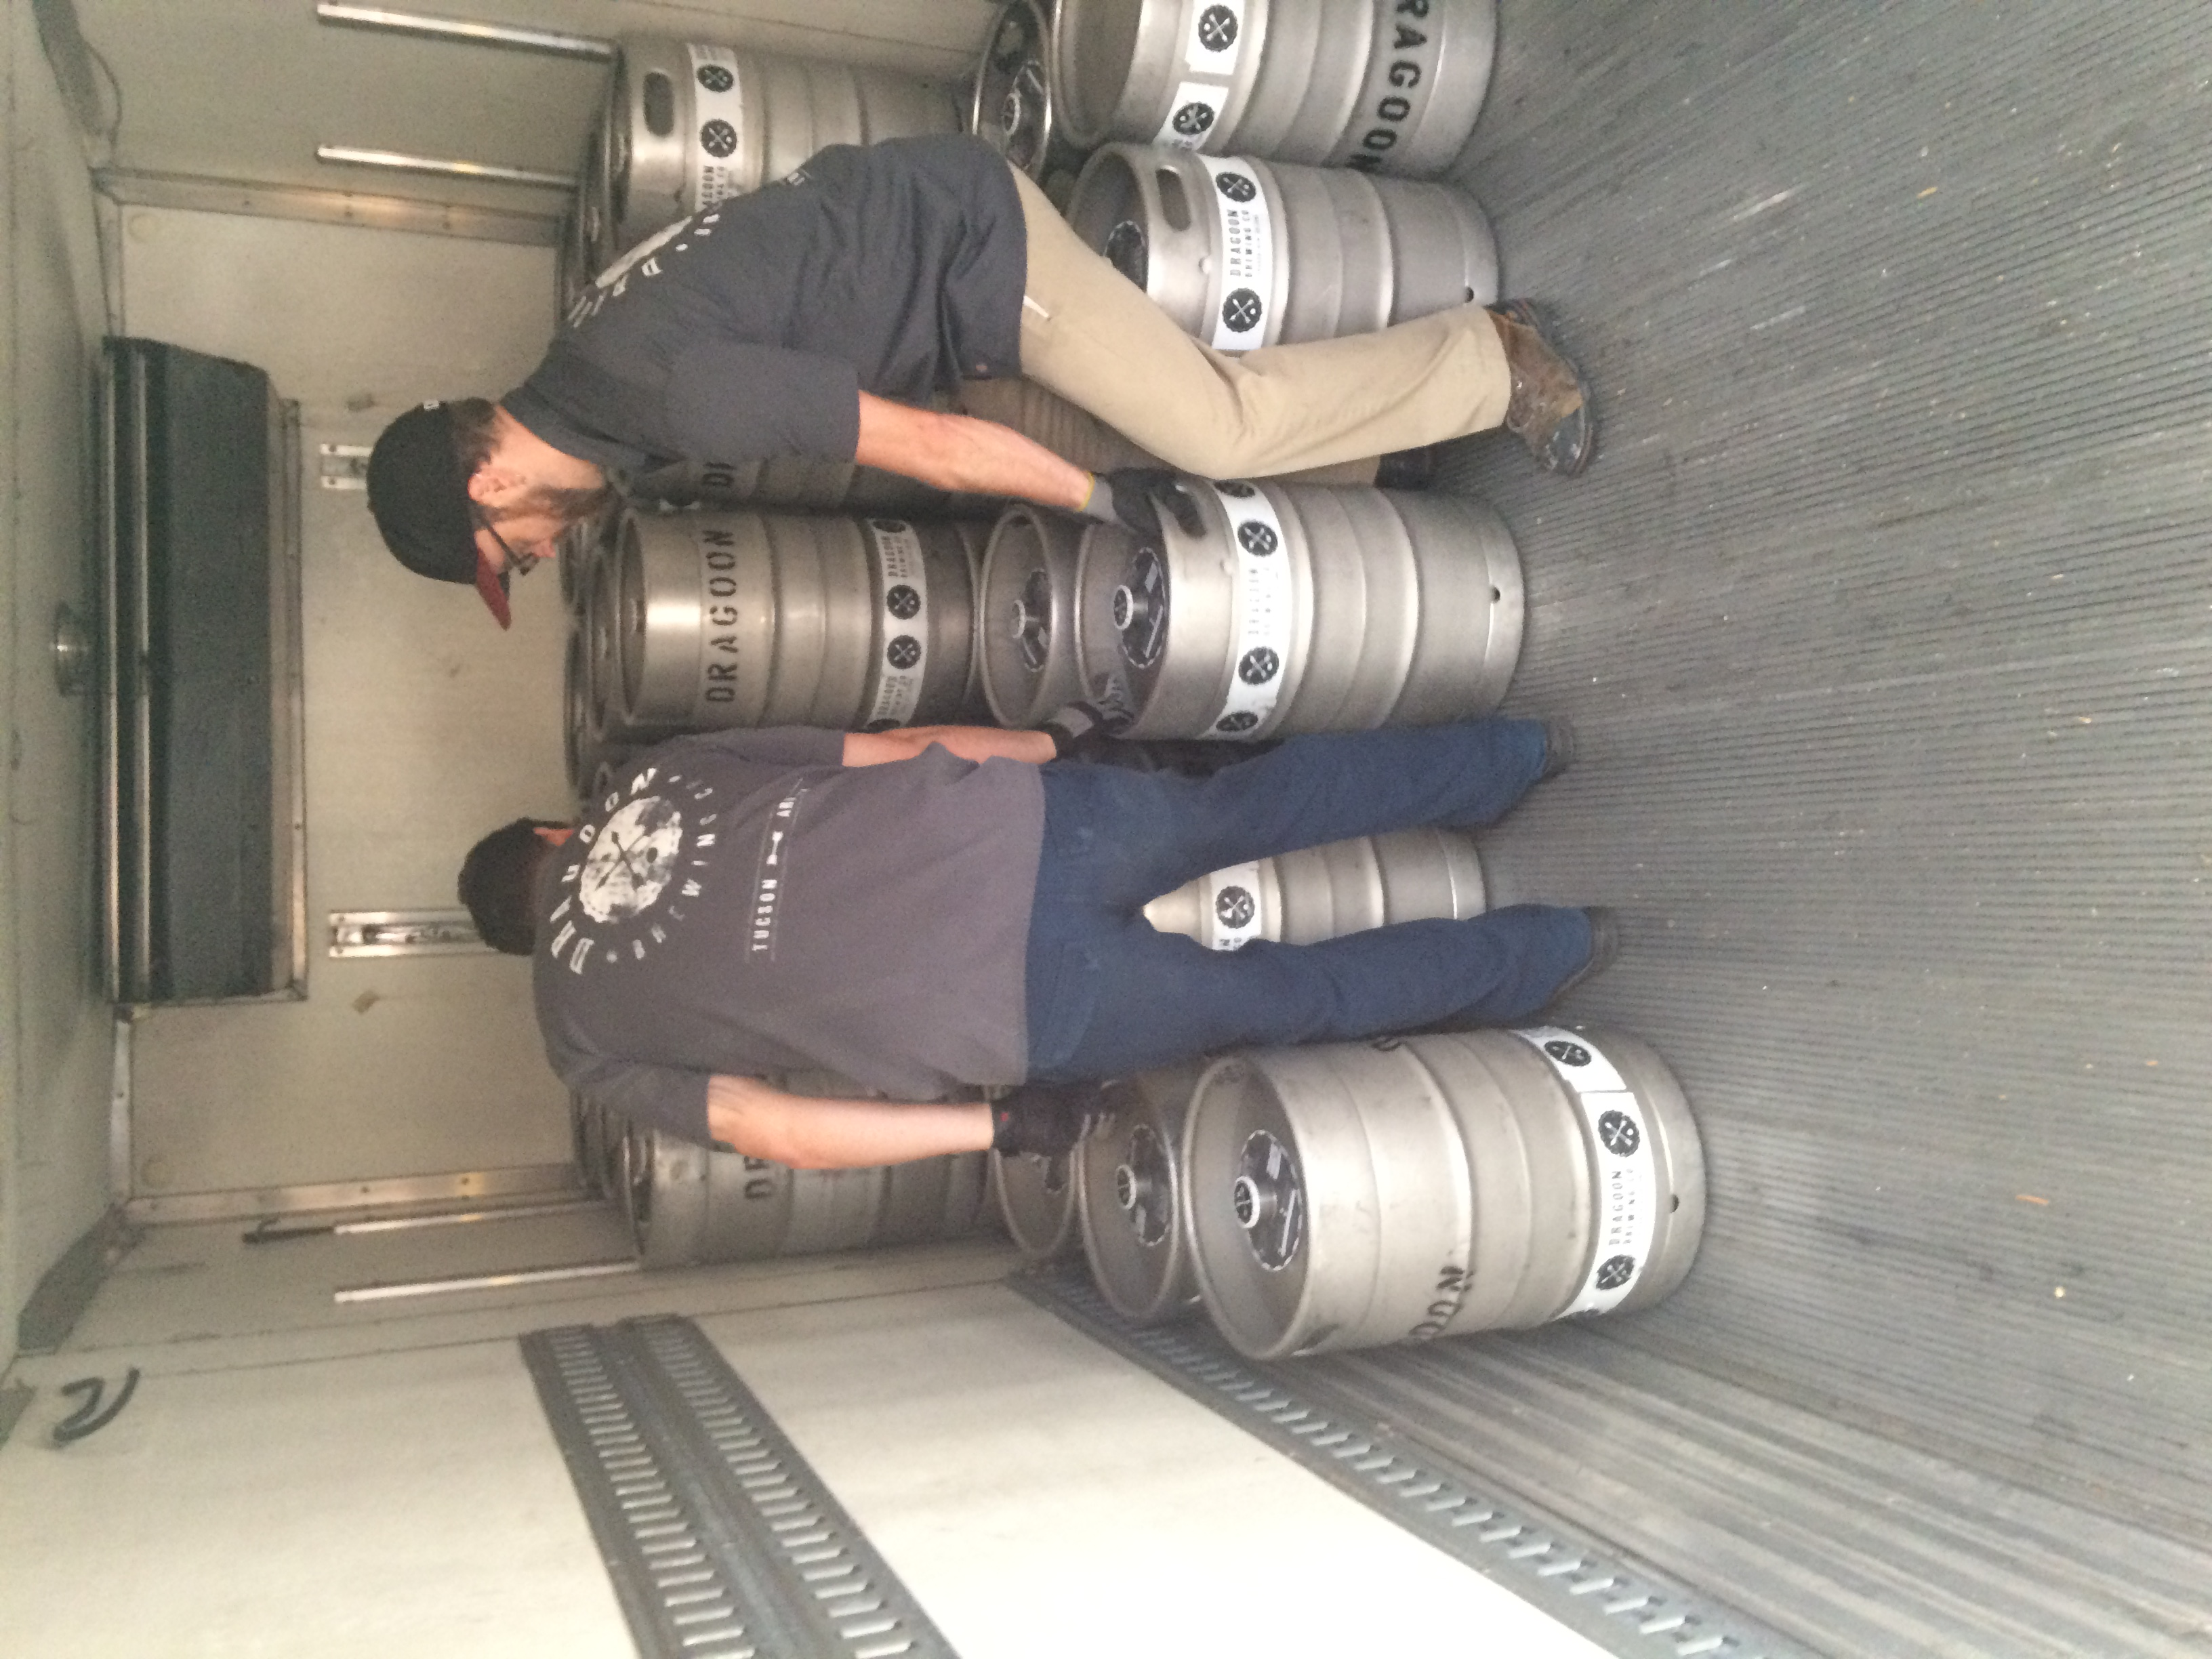 Pat & Tristan loading up the kegs